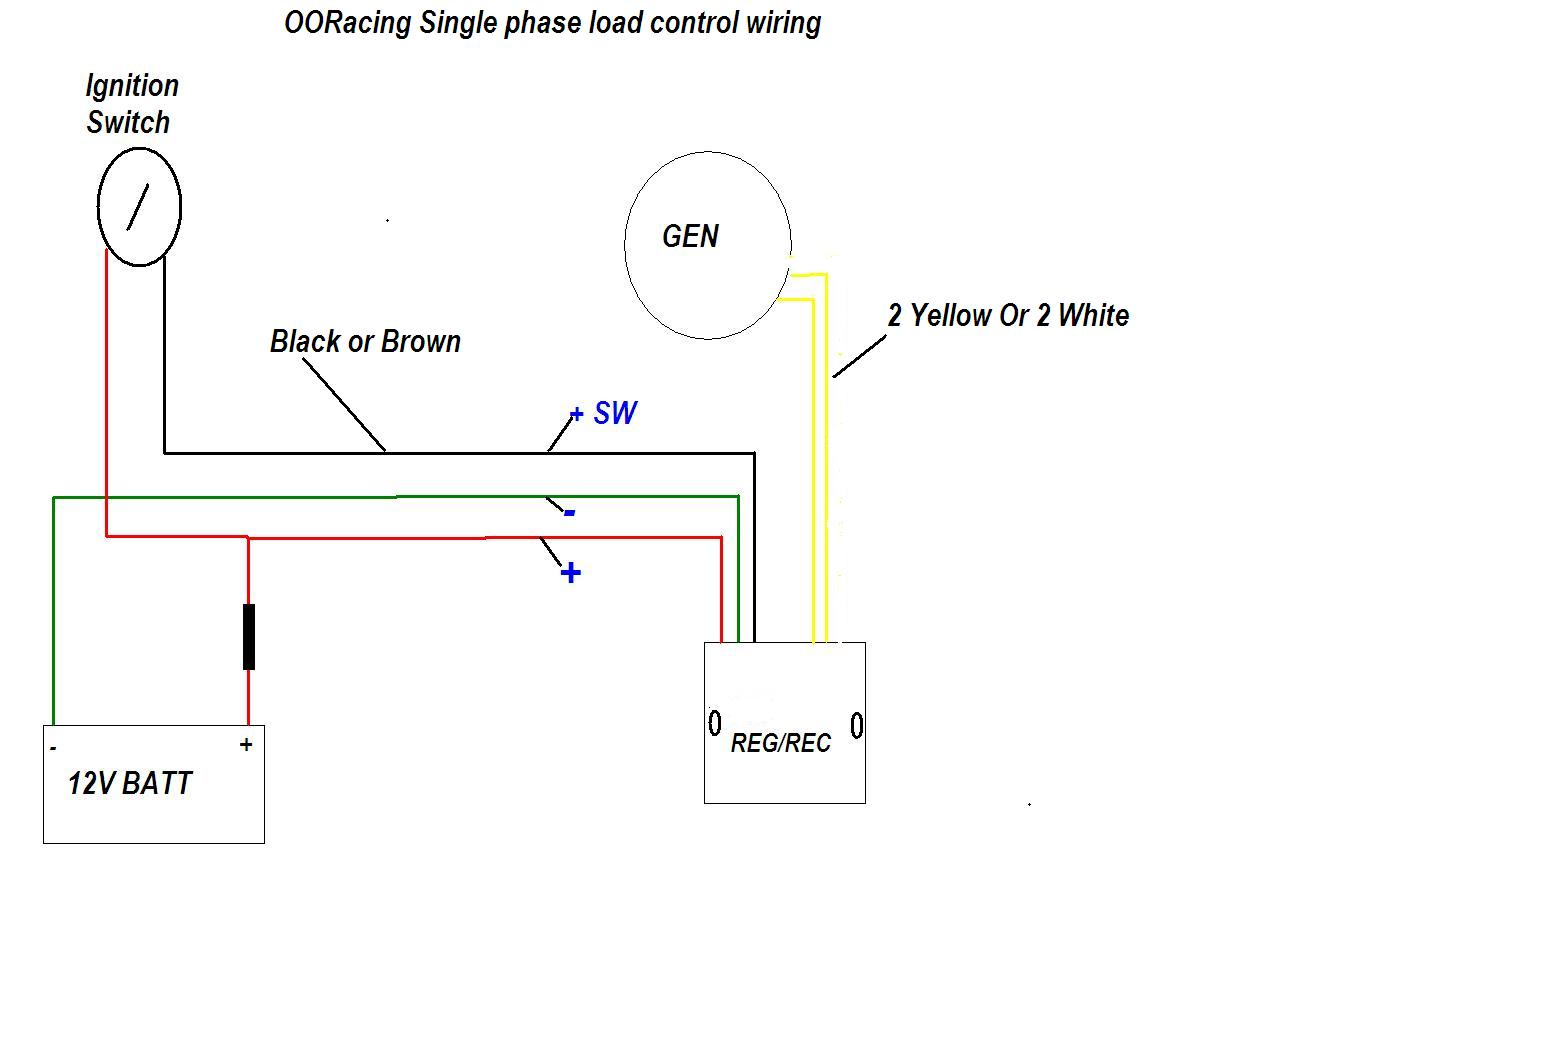 Single_phase_50W_Gen_wiring pit bike wiring diagram diagram wiring diagrams for diy car repairs Pit Bike Racing Rules at gsmportal.co